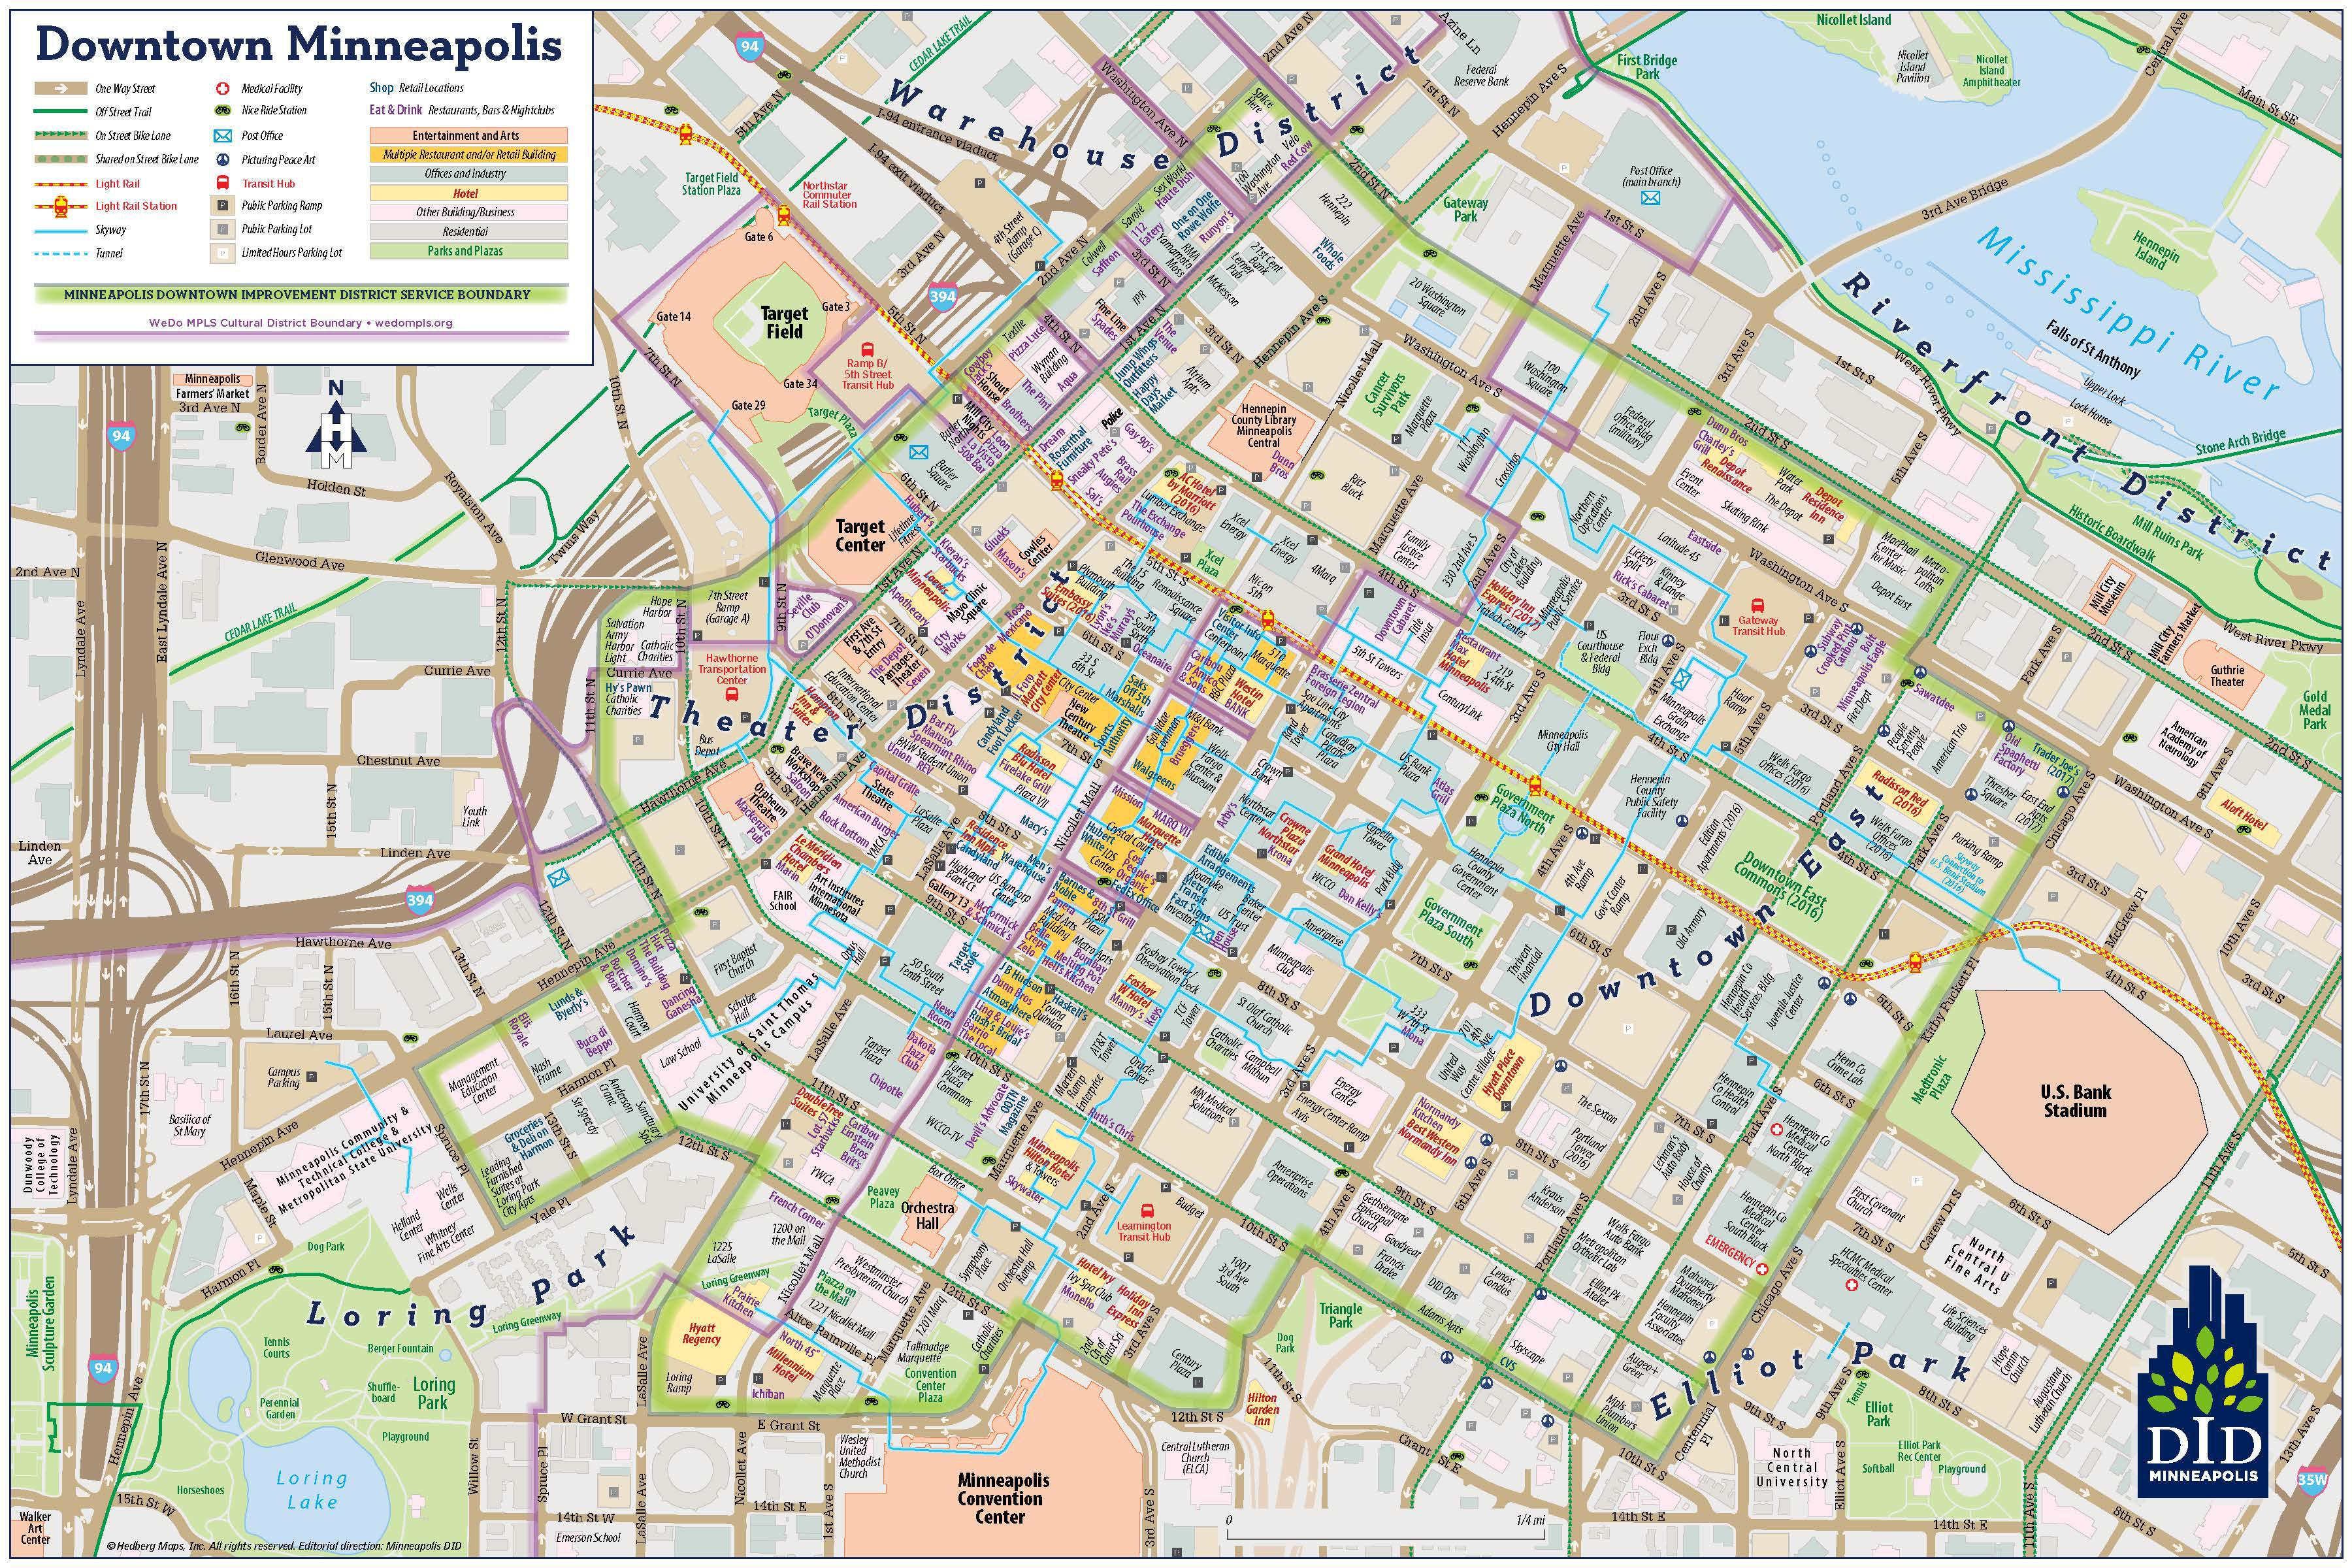 Mpls DID - Downtown Minneapolis Visitor Map